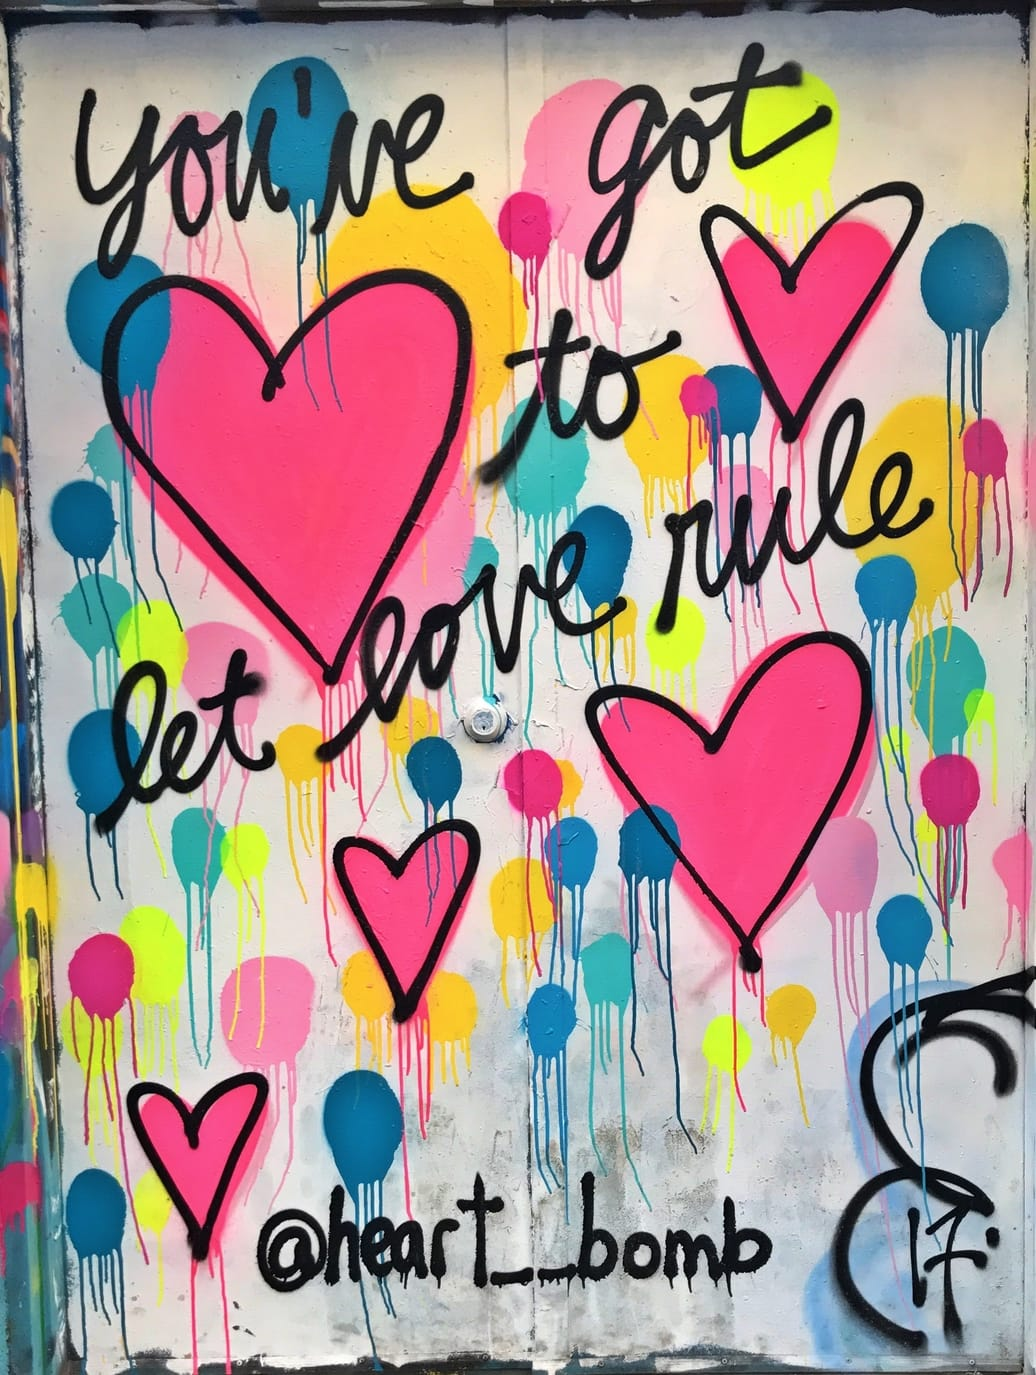 A vibrant graffiti design with pink hearts and blue, yellow and green spots with the words You've Got To Let Love Rule